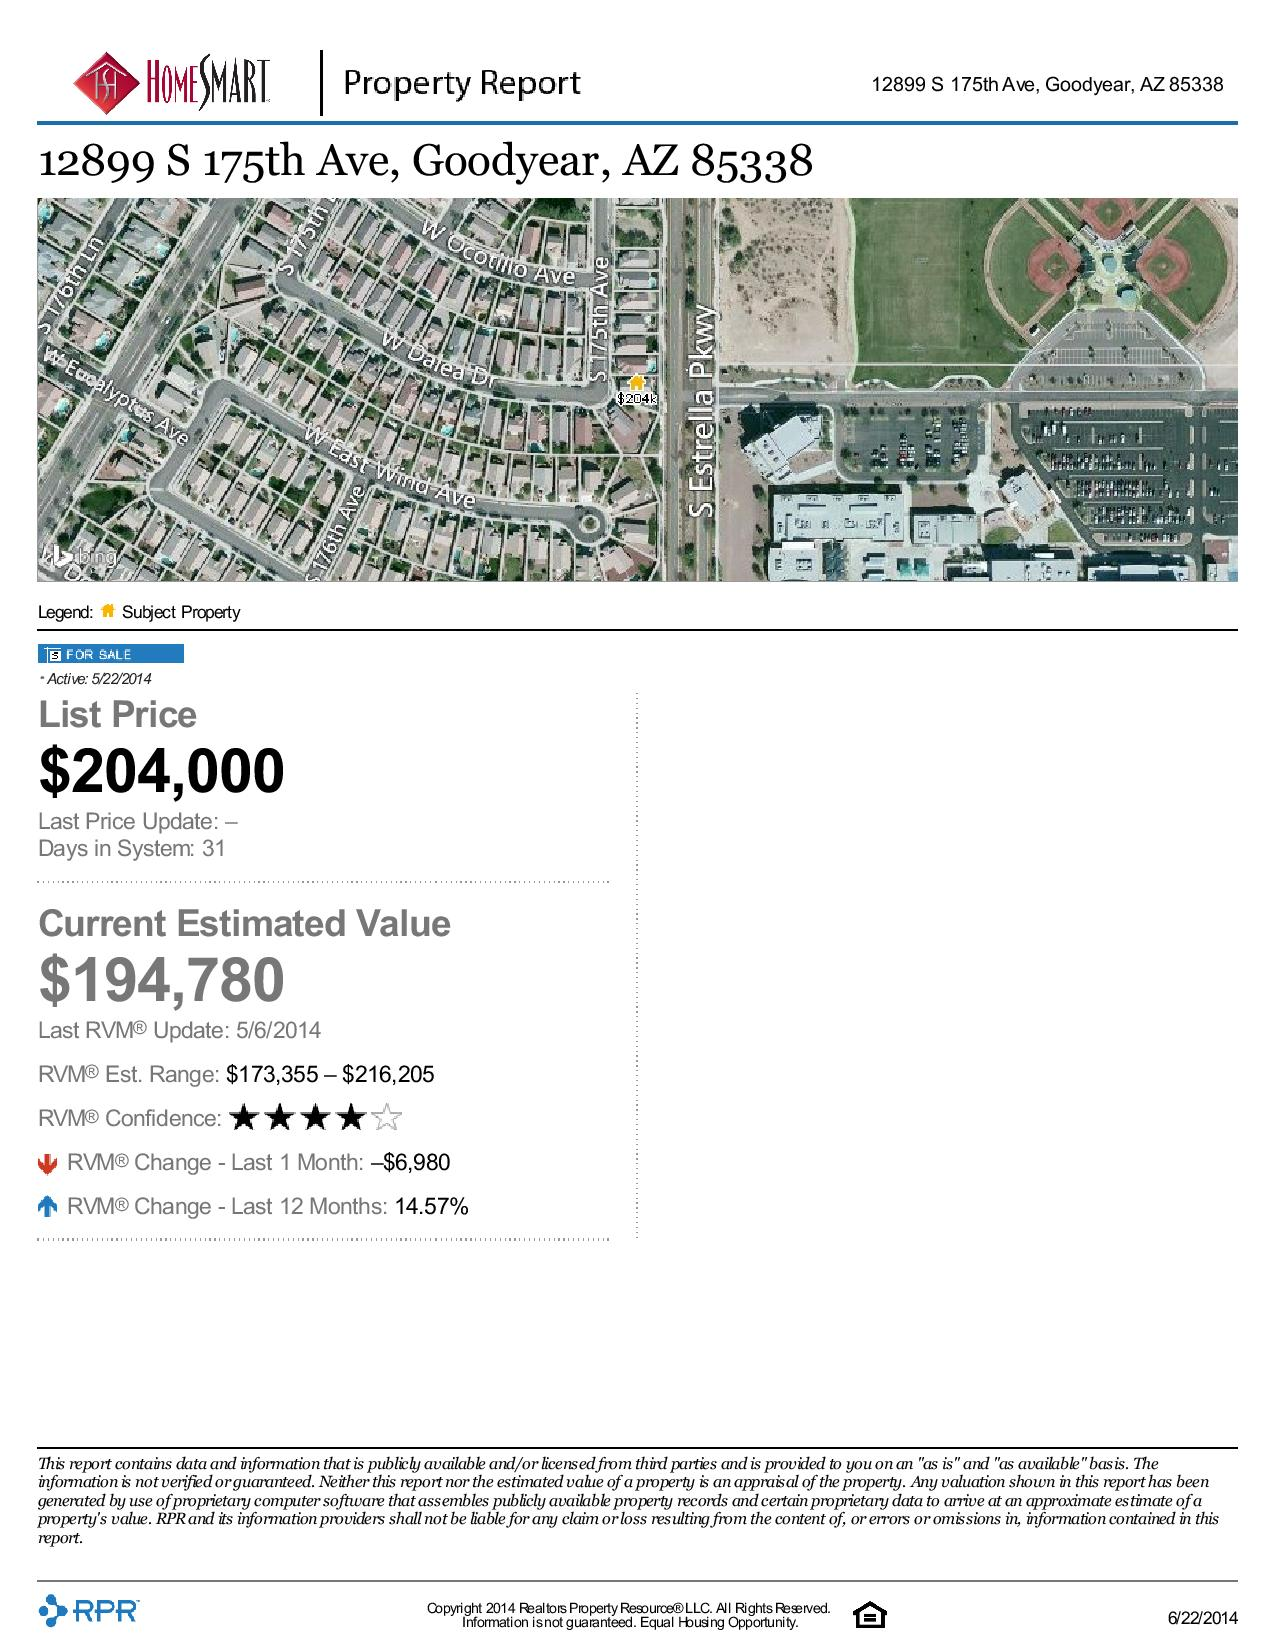 12899-S-175th-Ave-Goodyear-AZ-85338-page-002